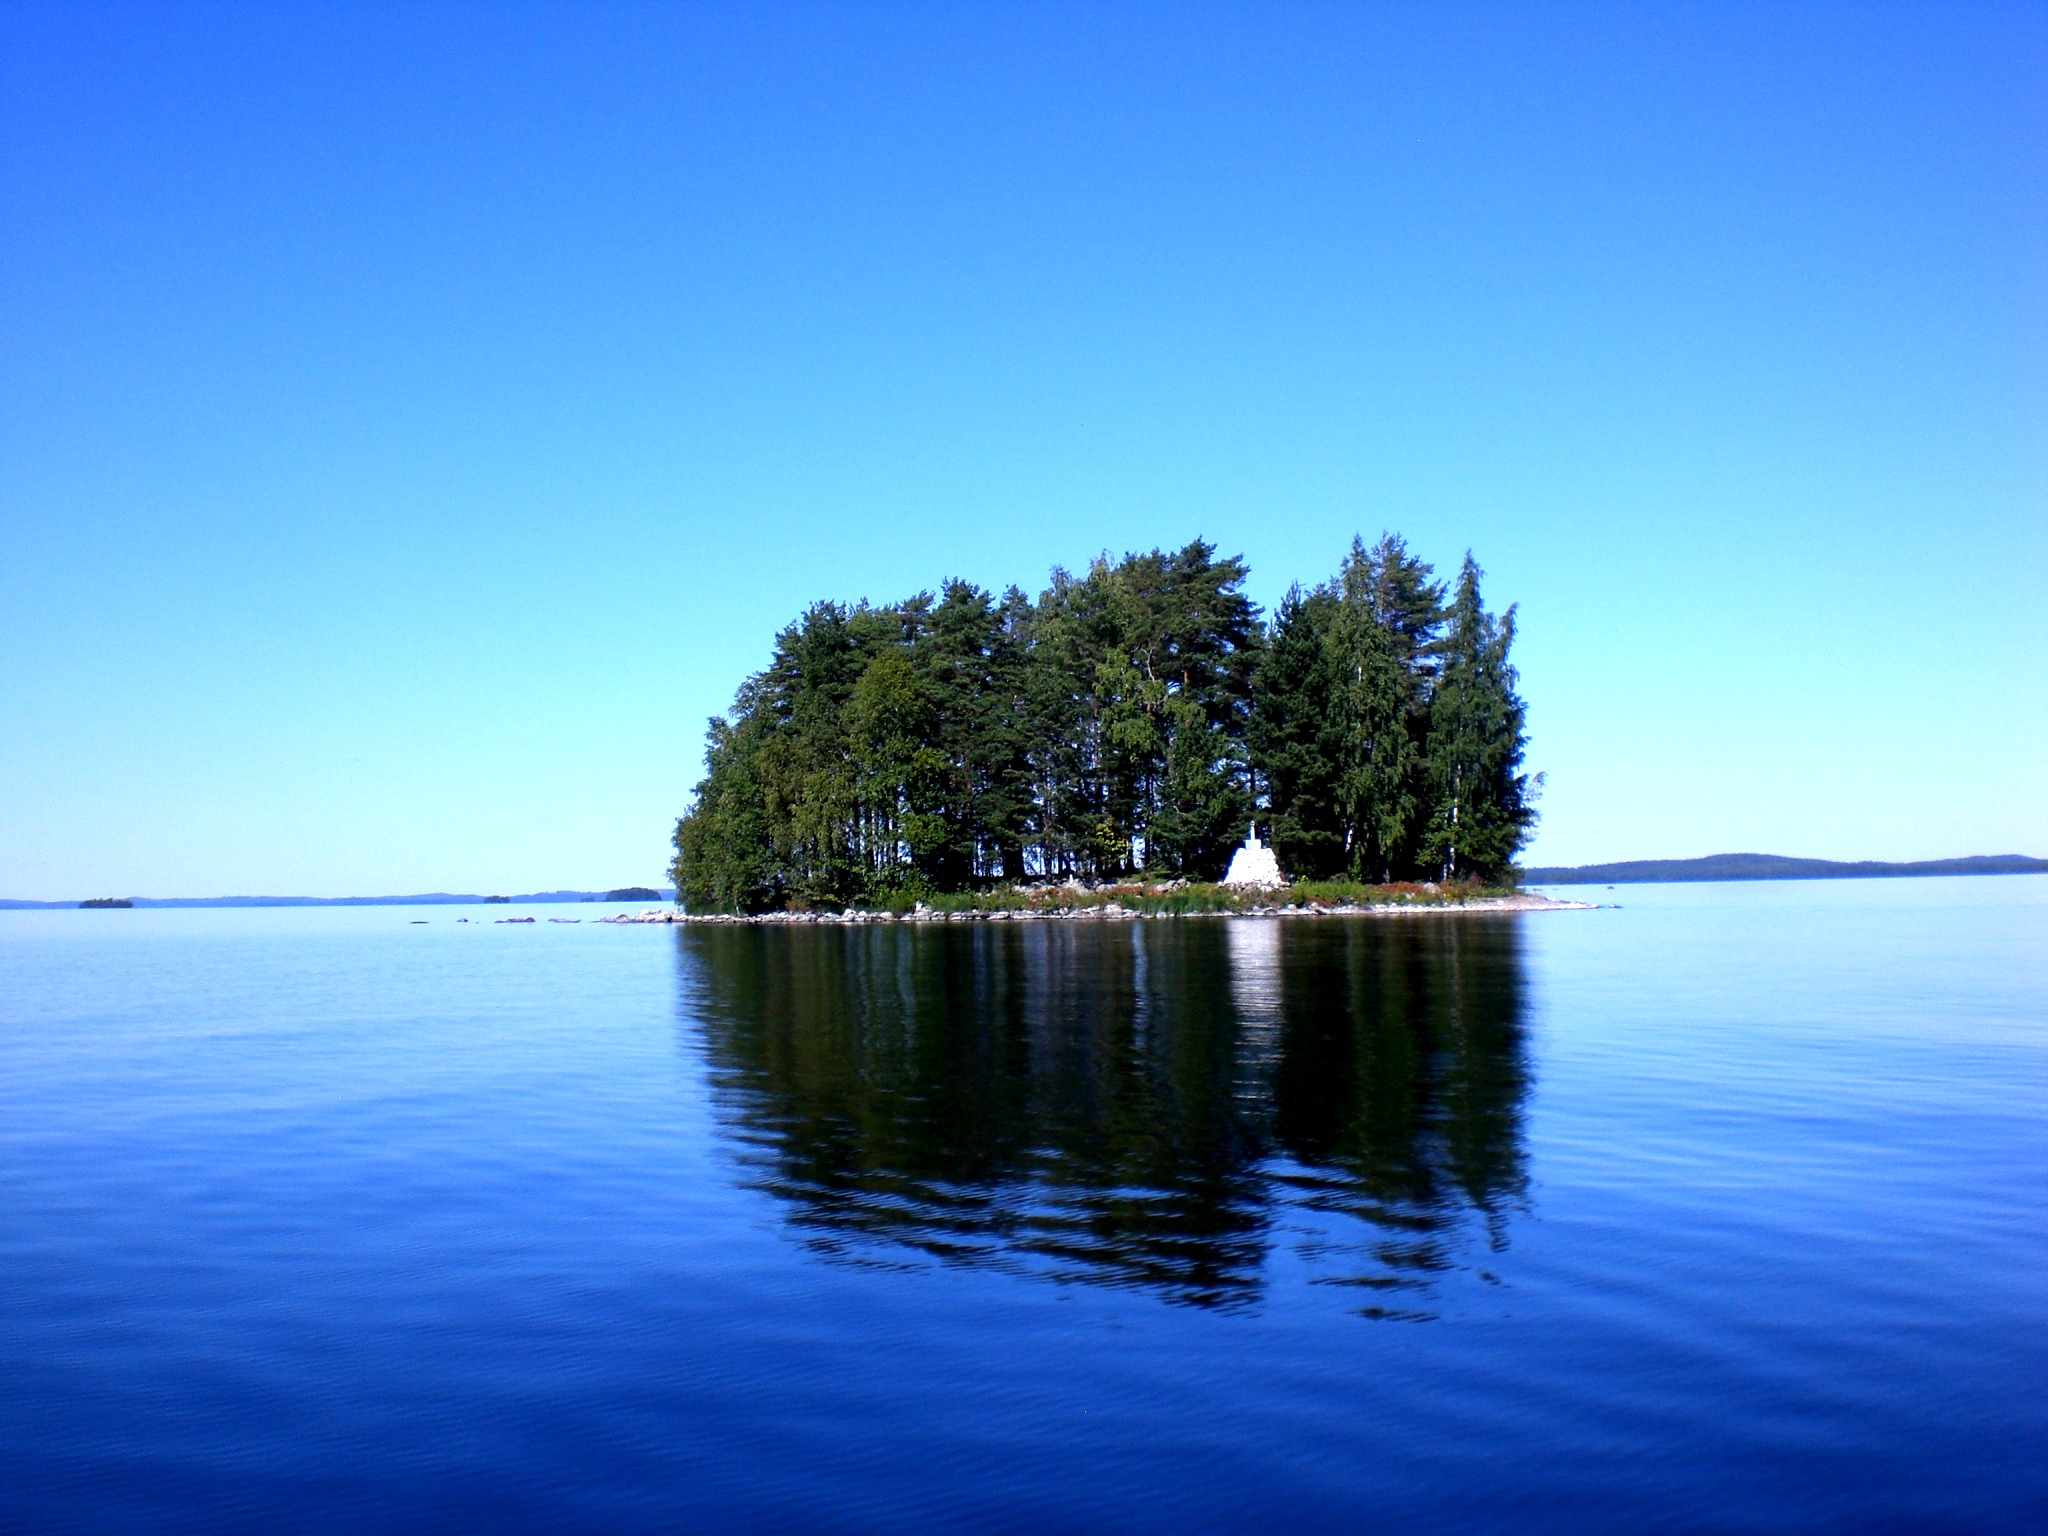 Enjoy wonderful Lake Päijänne with your motor boat. Discover quiet sandbeaches on islands in Lake Päijänne National Park